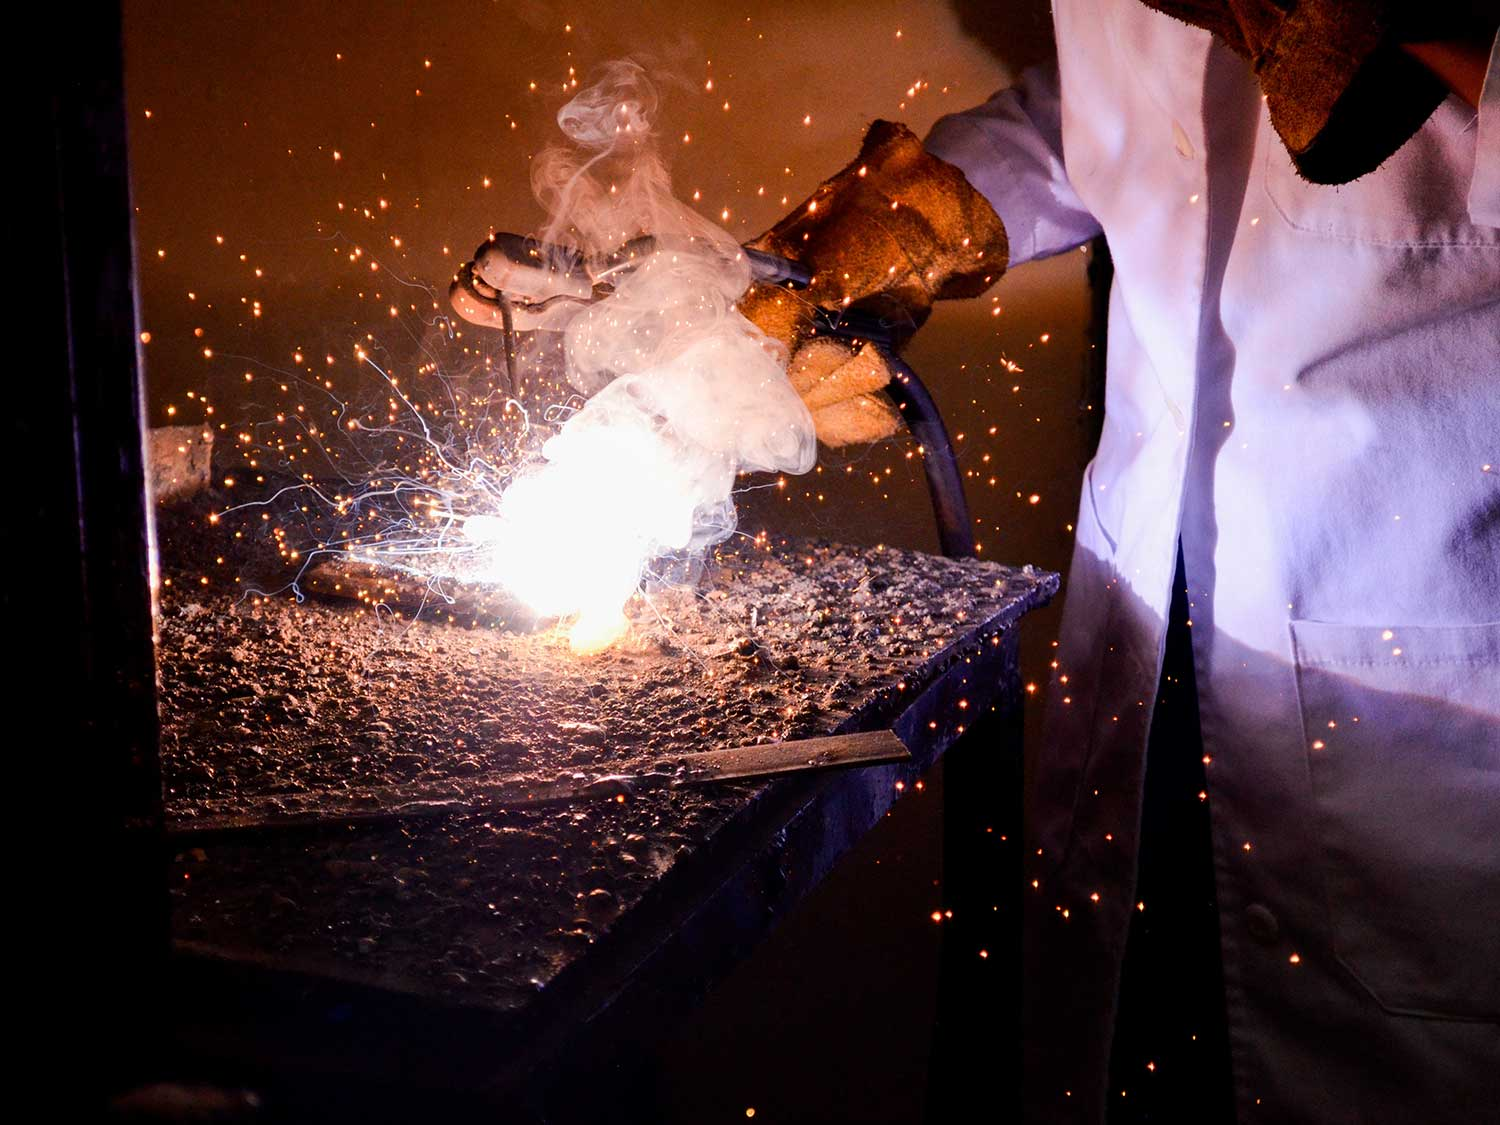 Using welding gloves while welding.